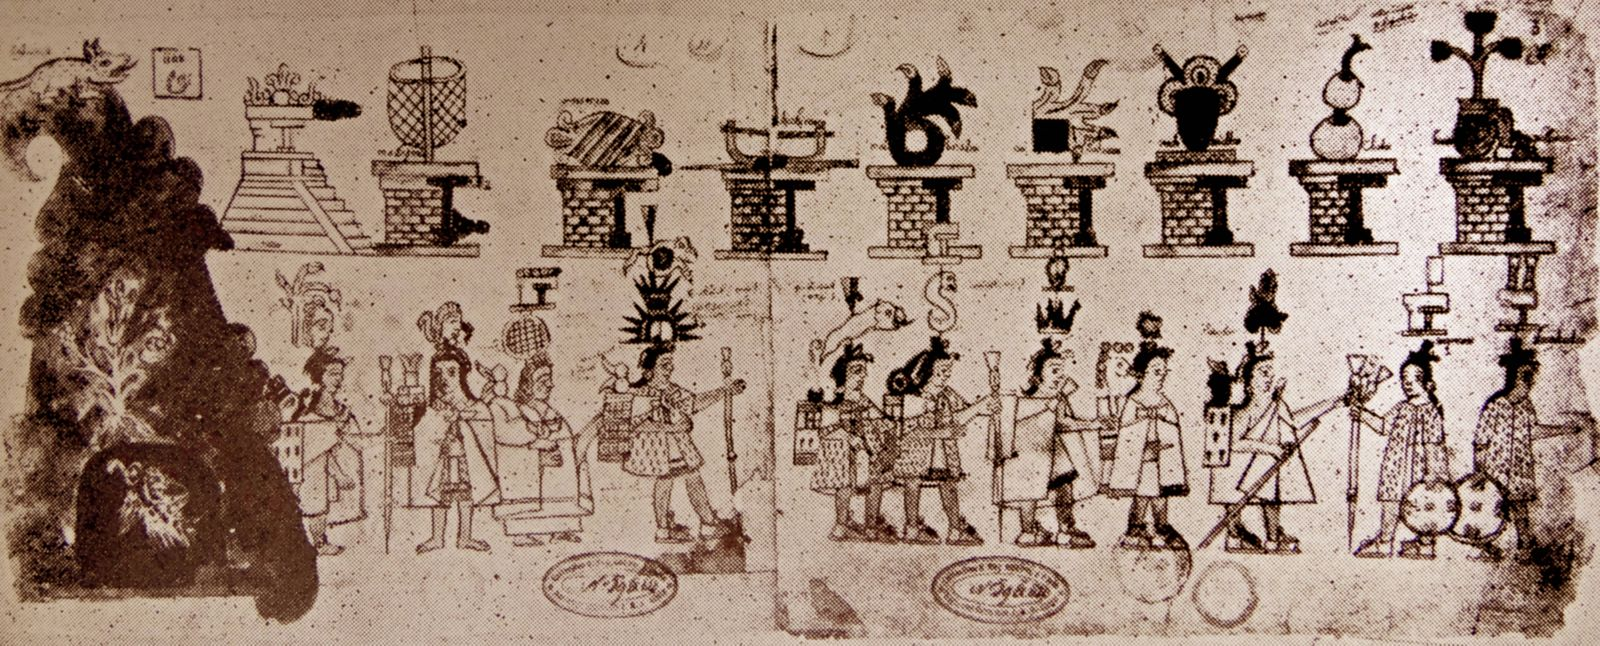 The Aztec Codex Azcatitlan details the history of the Mexica from their migration from Aztlßn to the